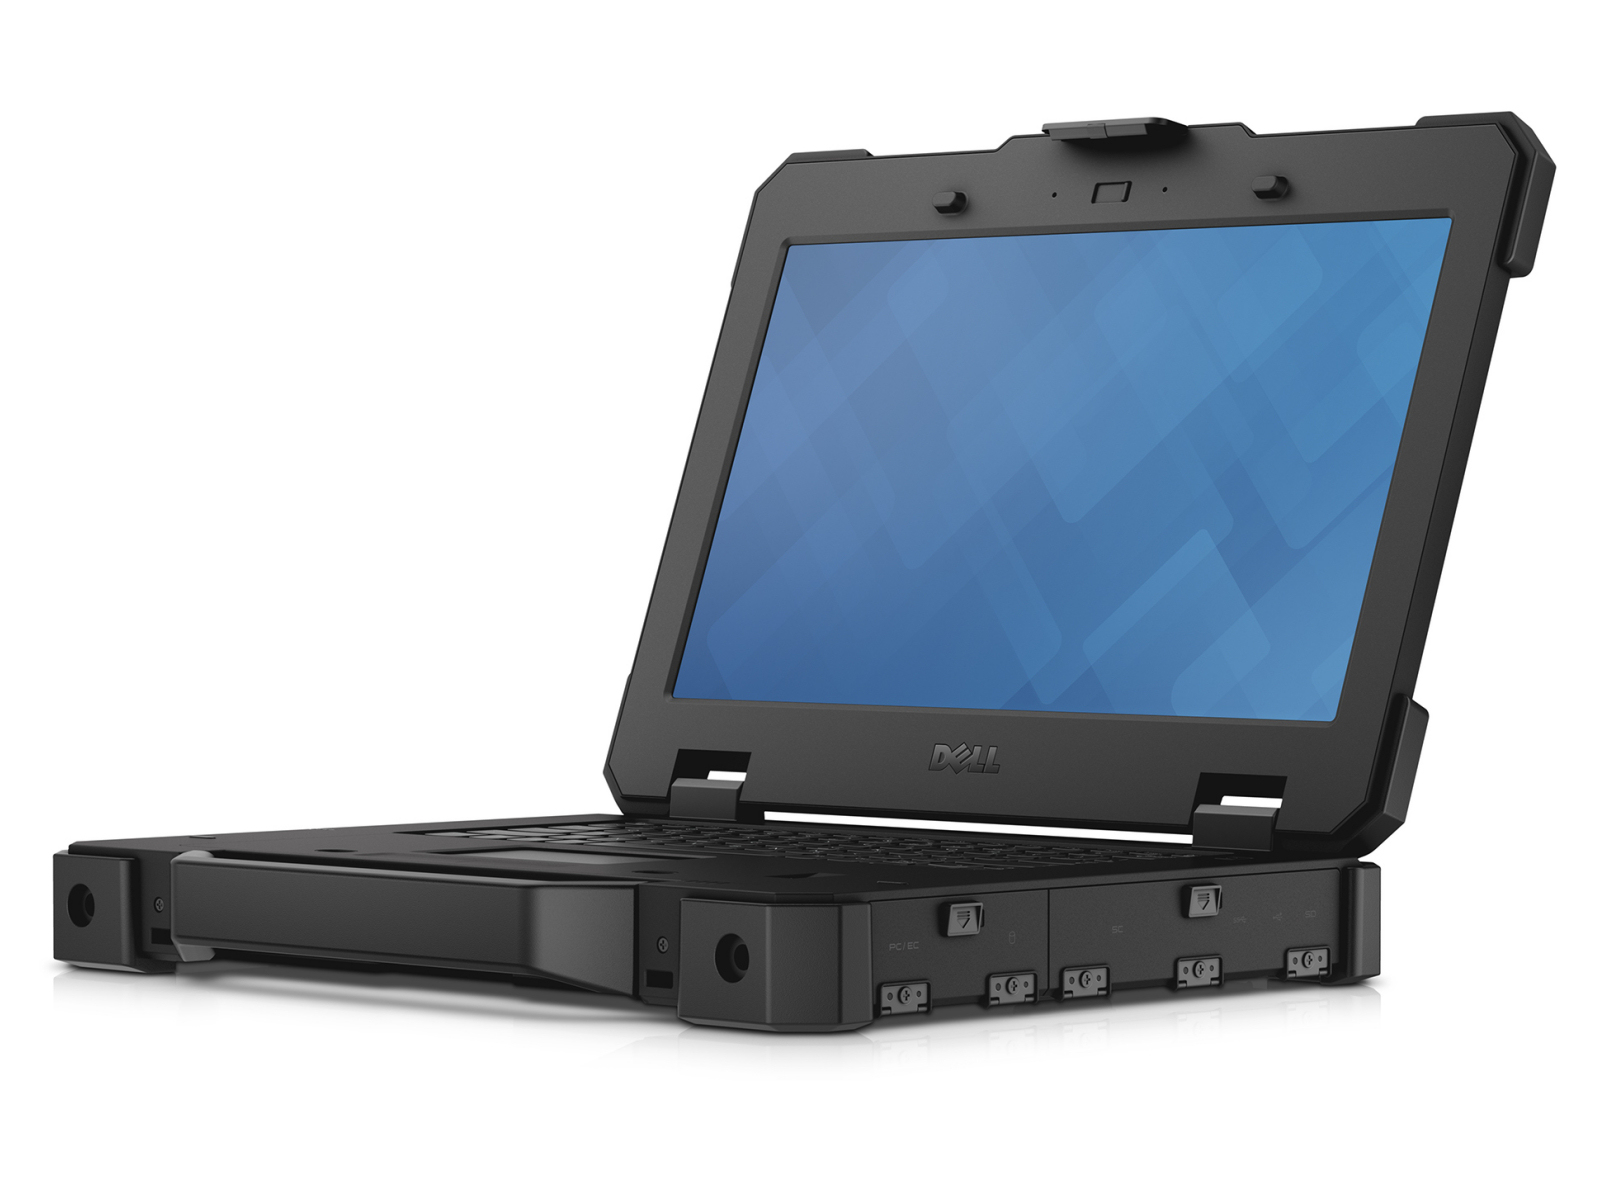 Test Dell Latitude 14 7414 Rugged Extreme (6200U, HD) Laptop